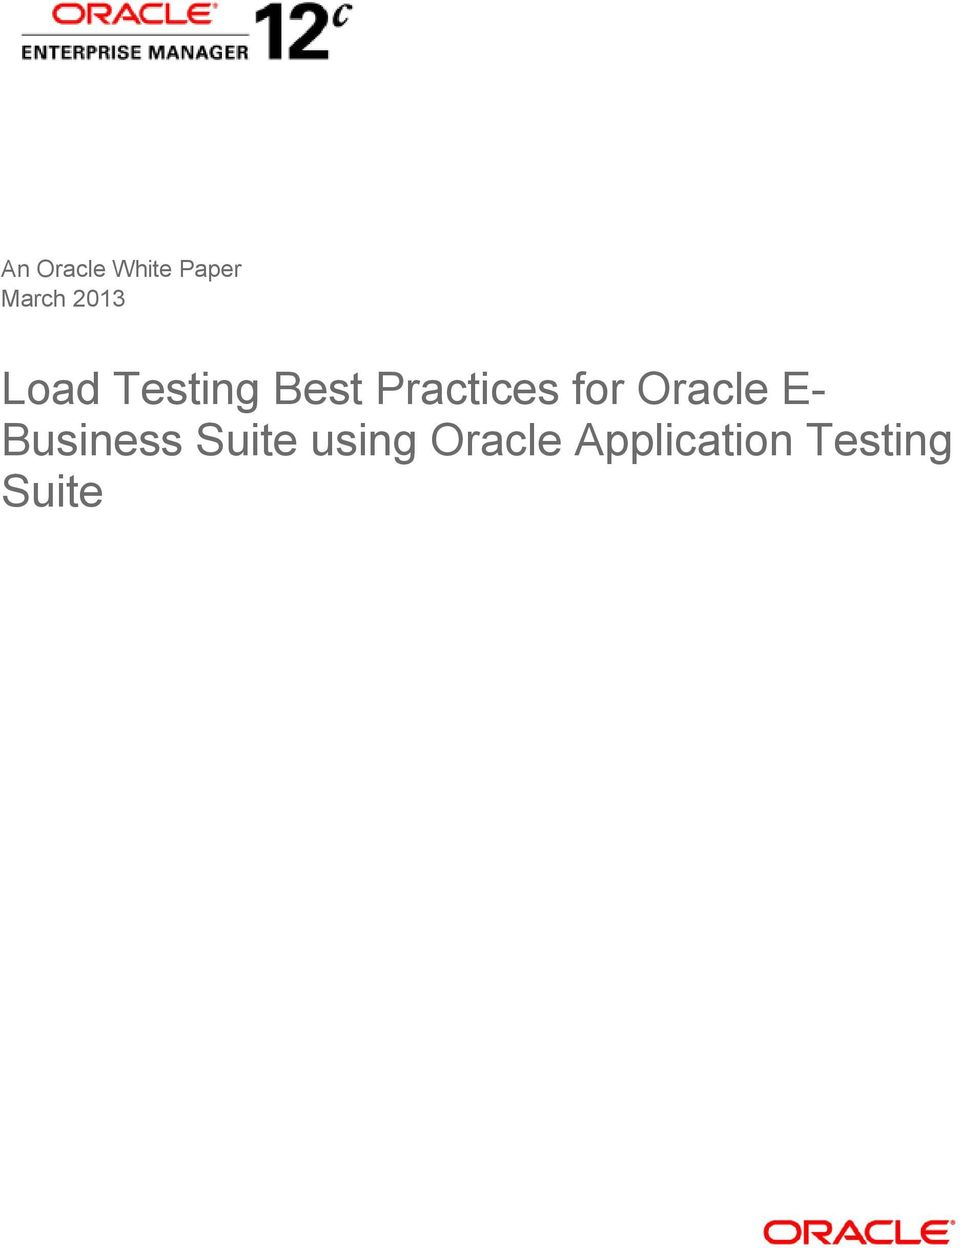 Practices for Oracle E-